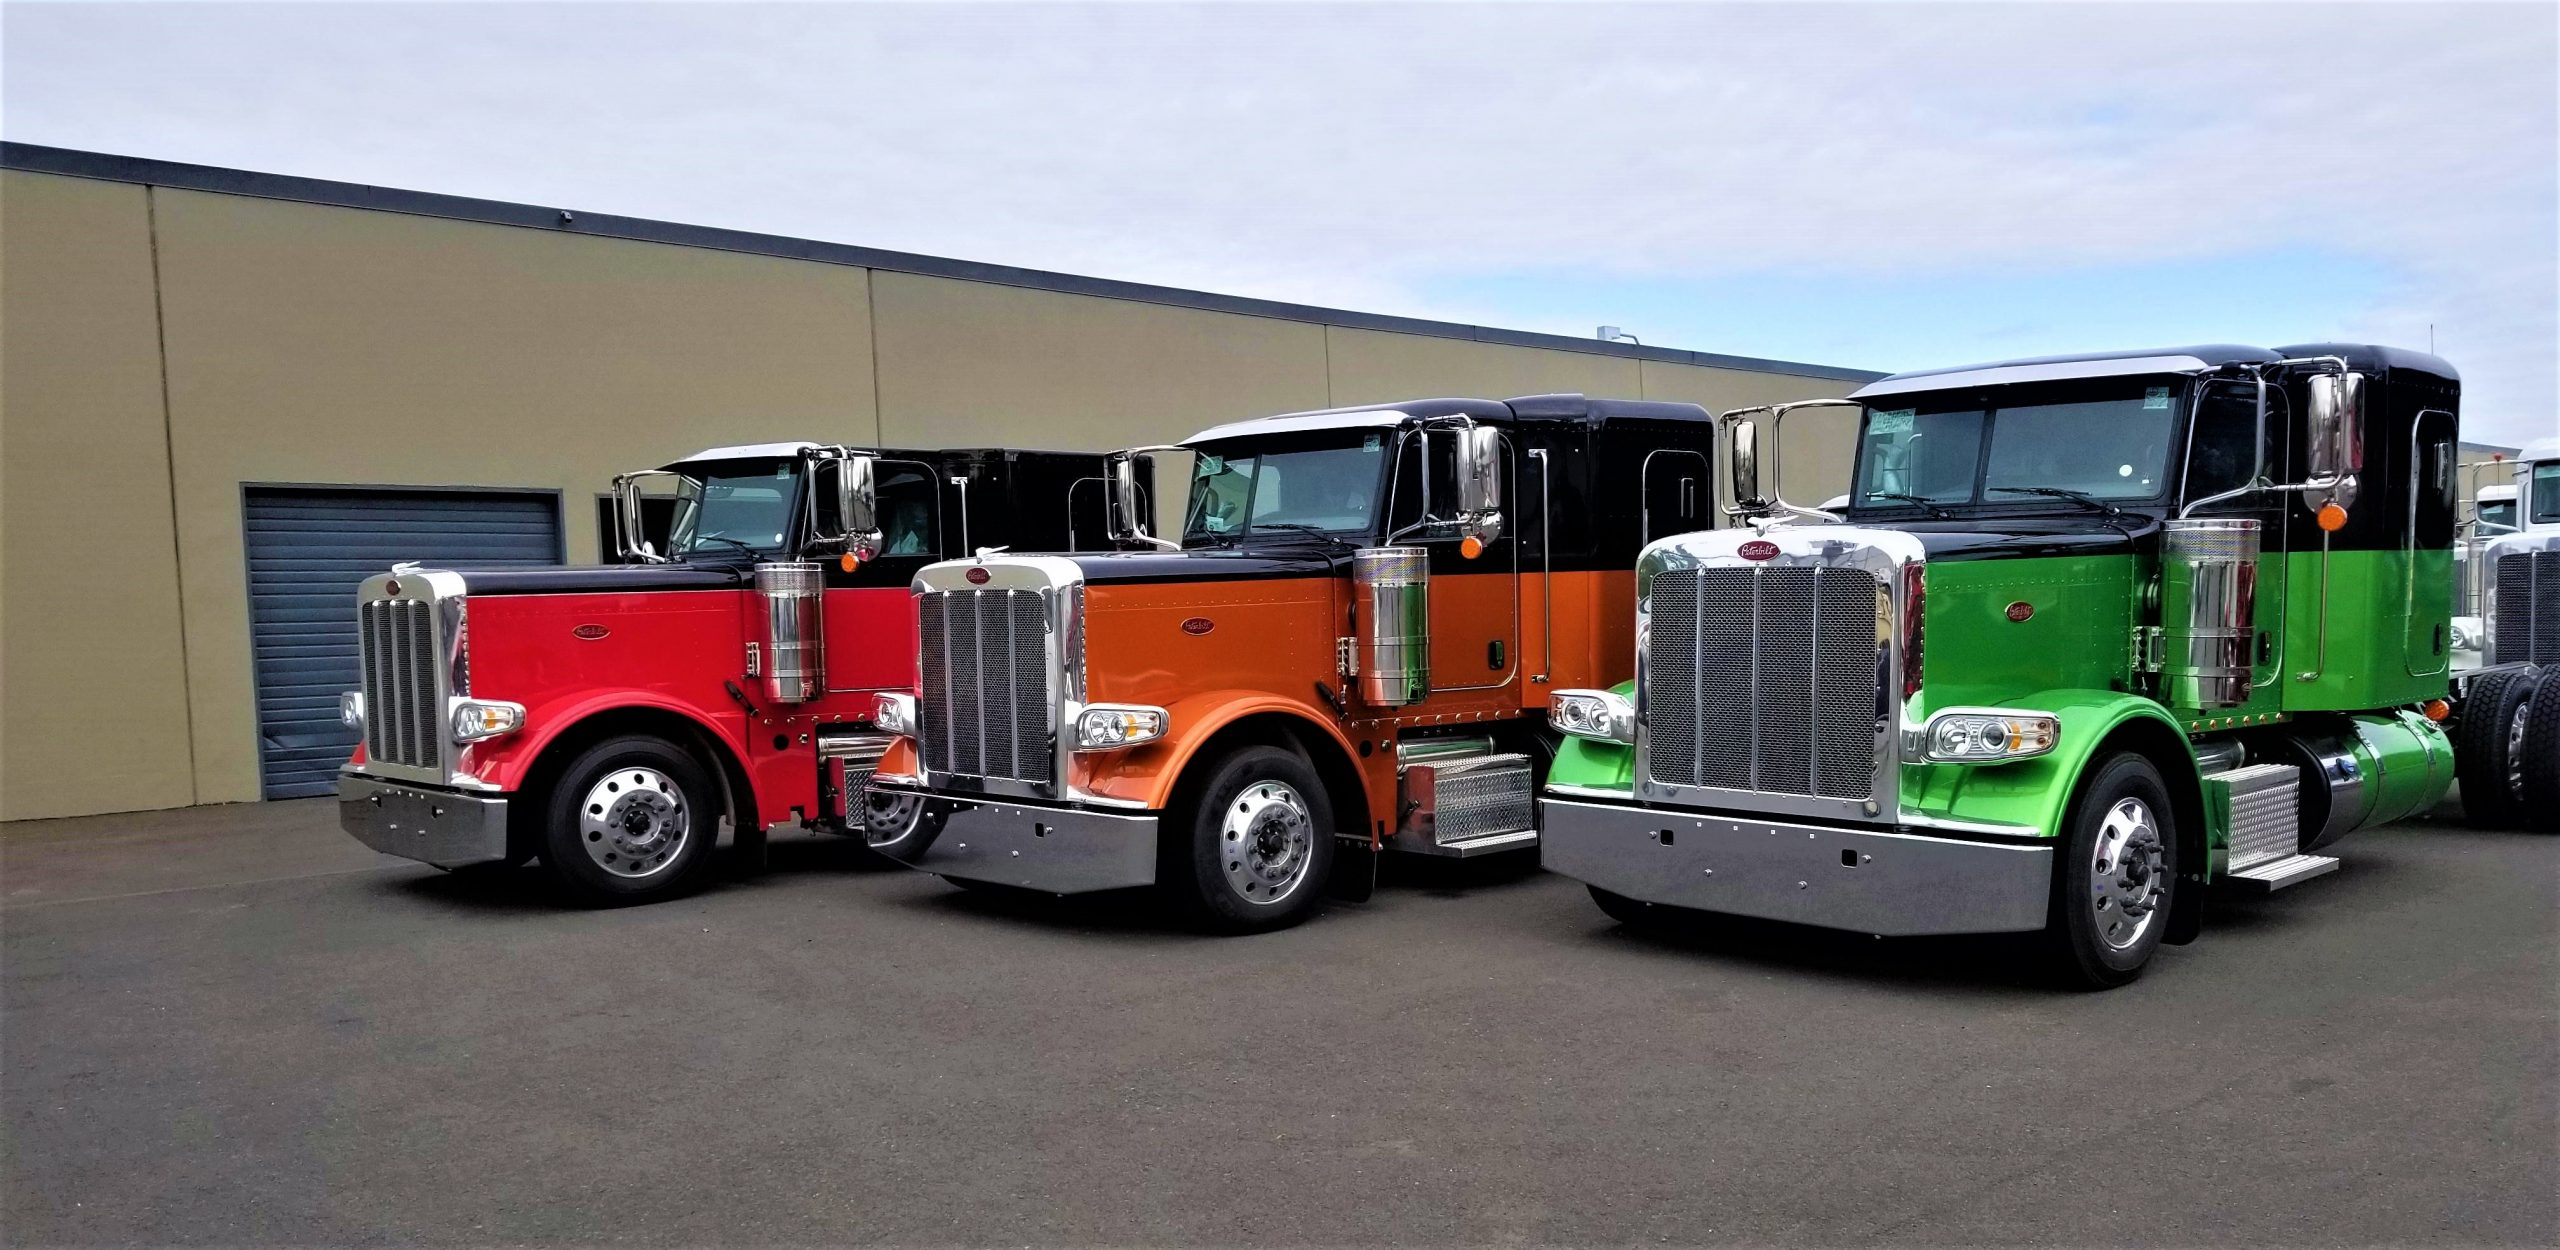 Colorful truck cabs for car haulers from Boydstun